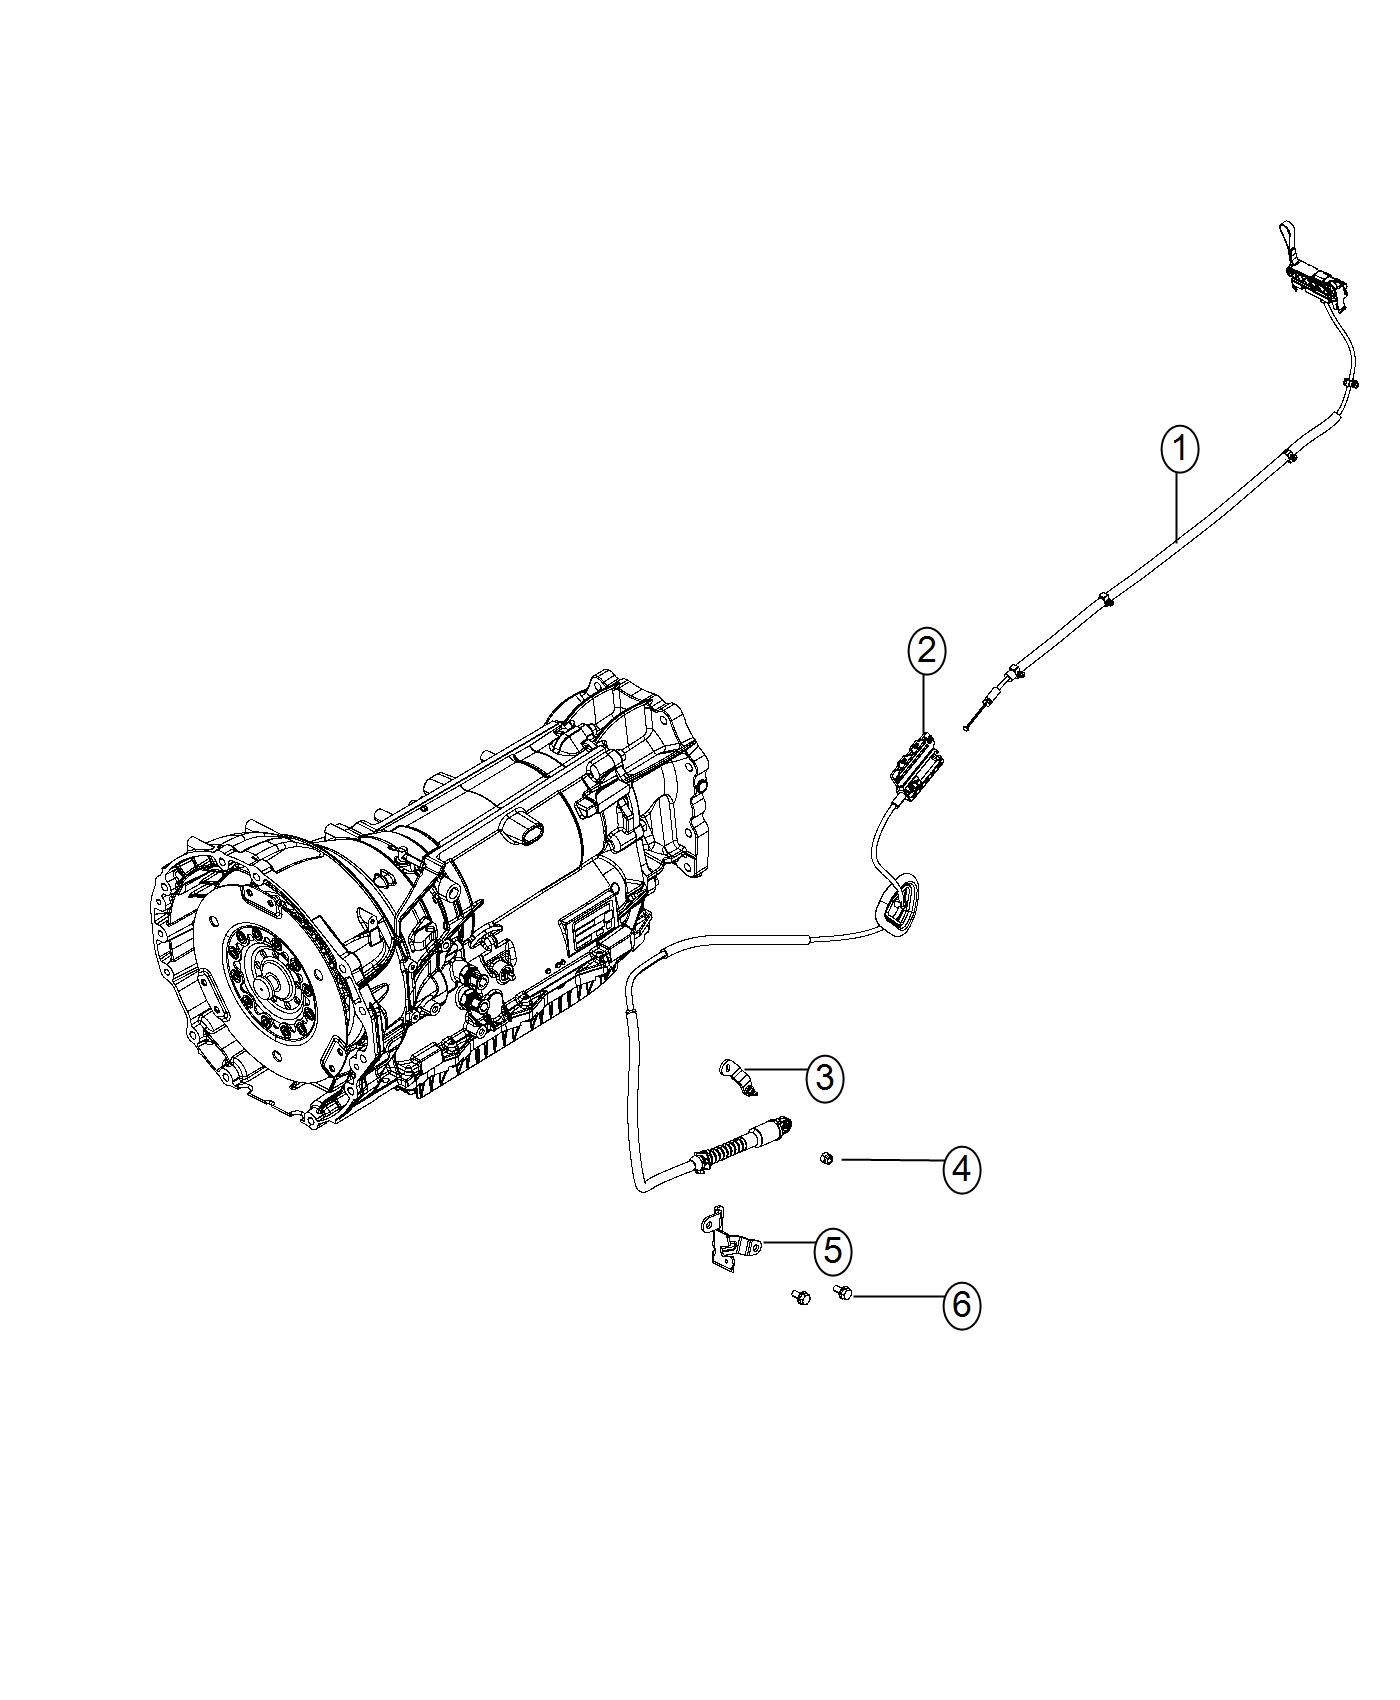 wiring diagram database  jeep grand cherokee bracket cable mounting